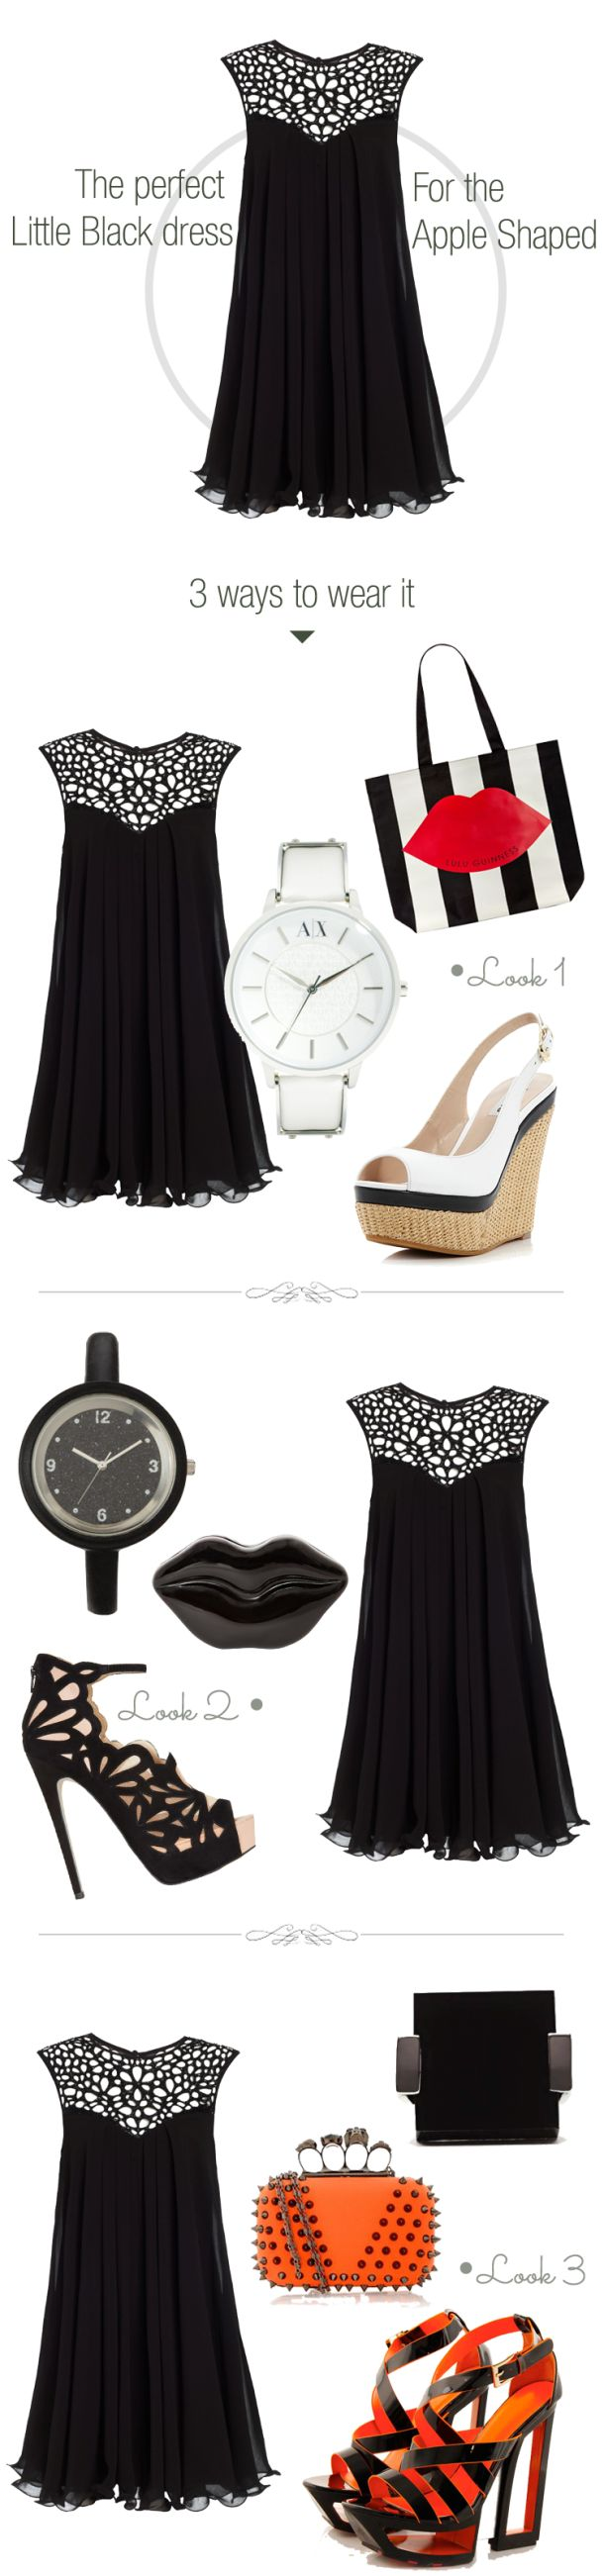 Dresses for apple shaped women - 3 Ways To Wear An Lbd For All Body Shapes